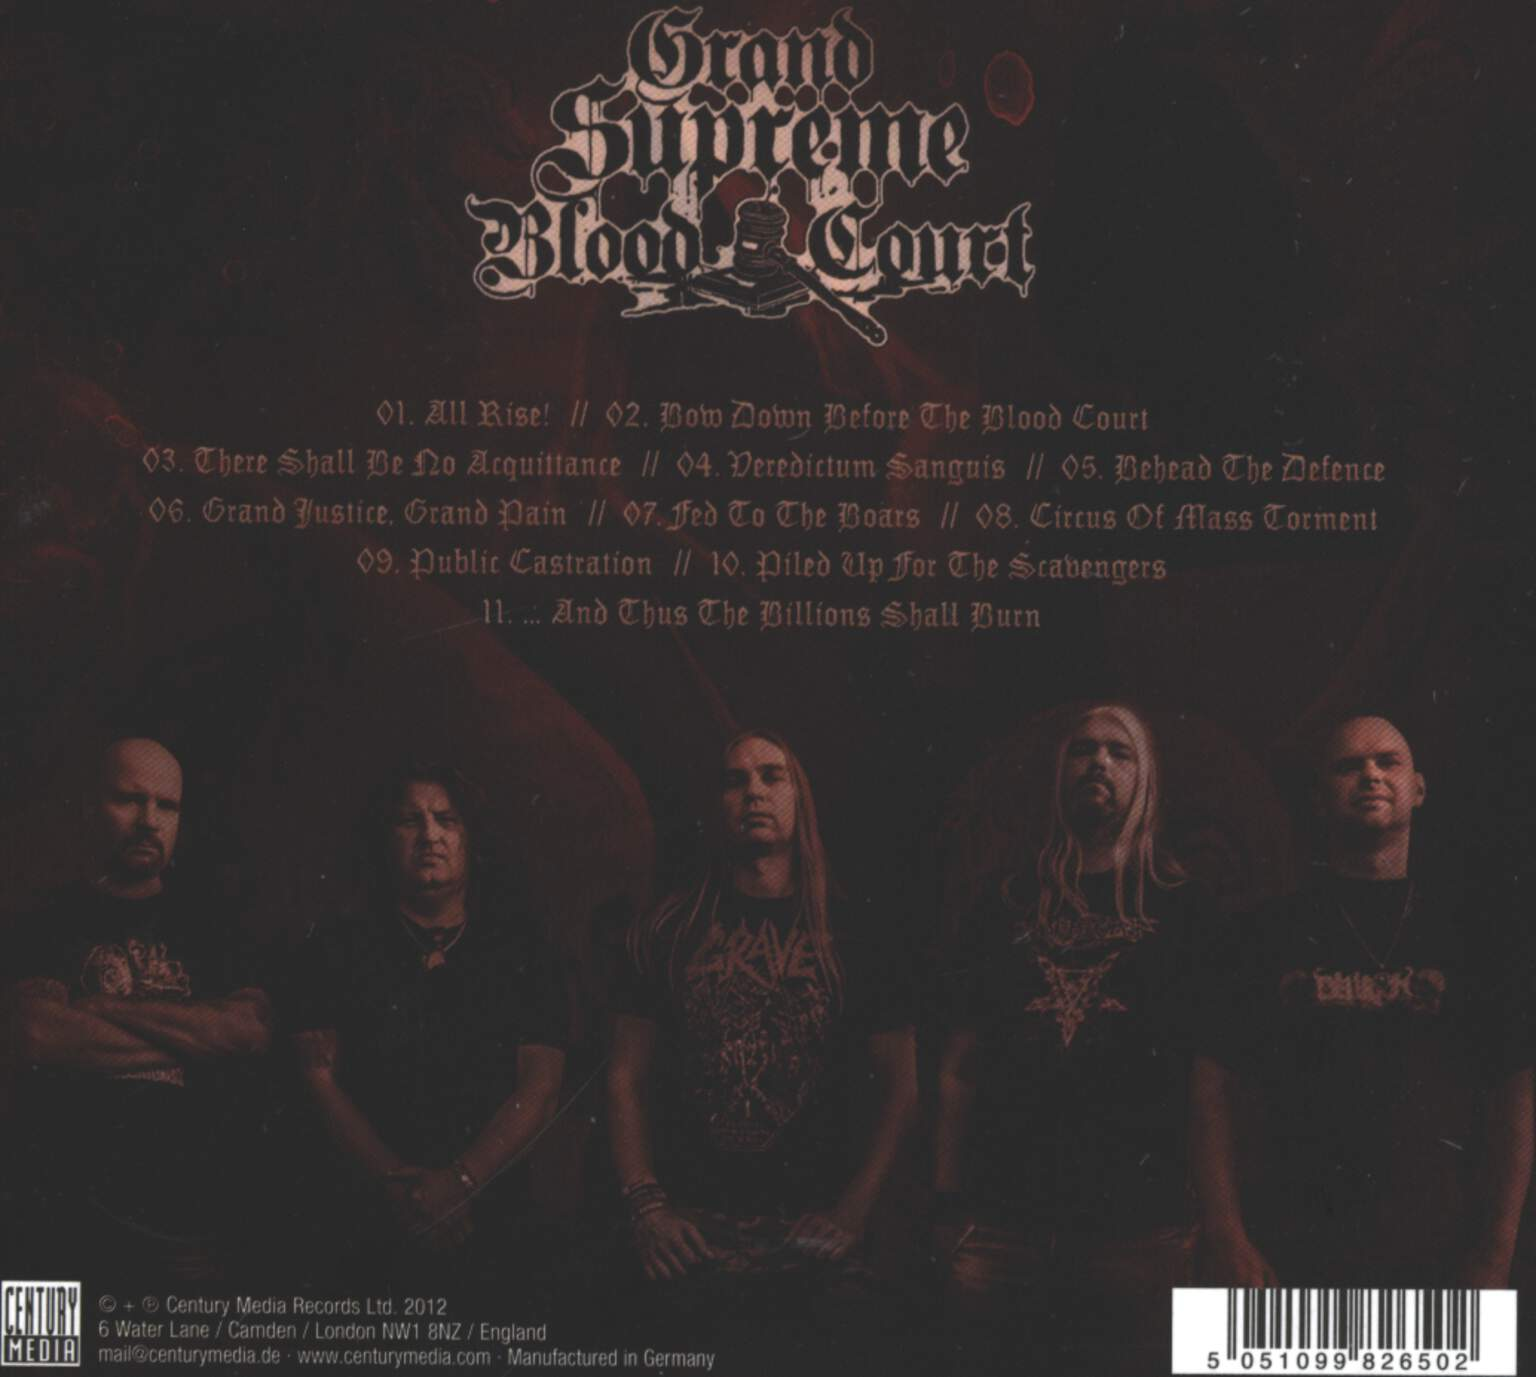 Grand Supreme Blood Court: Bow Down Before The Blood Court, CD